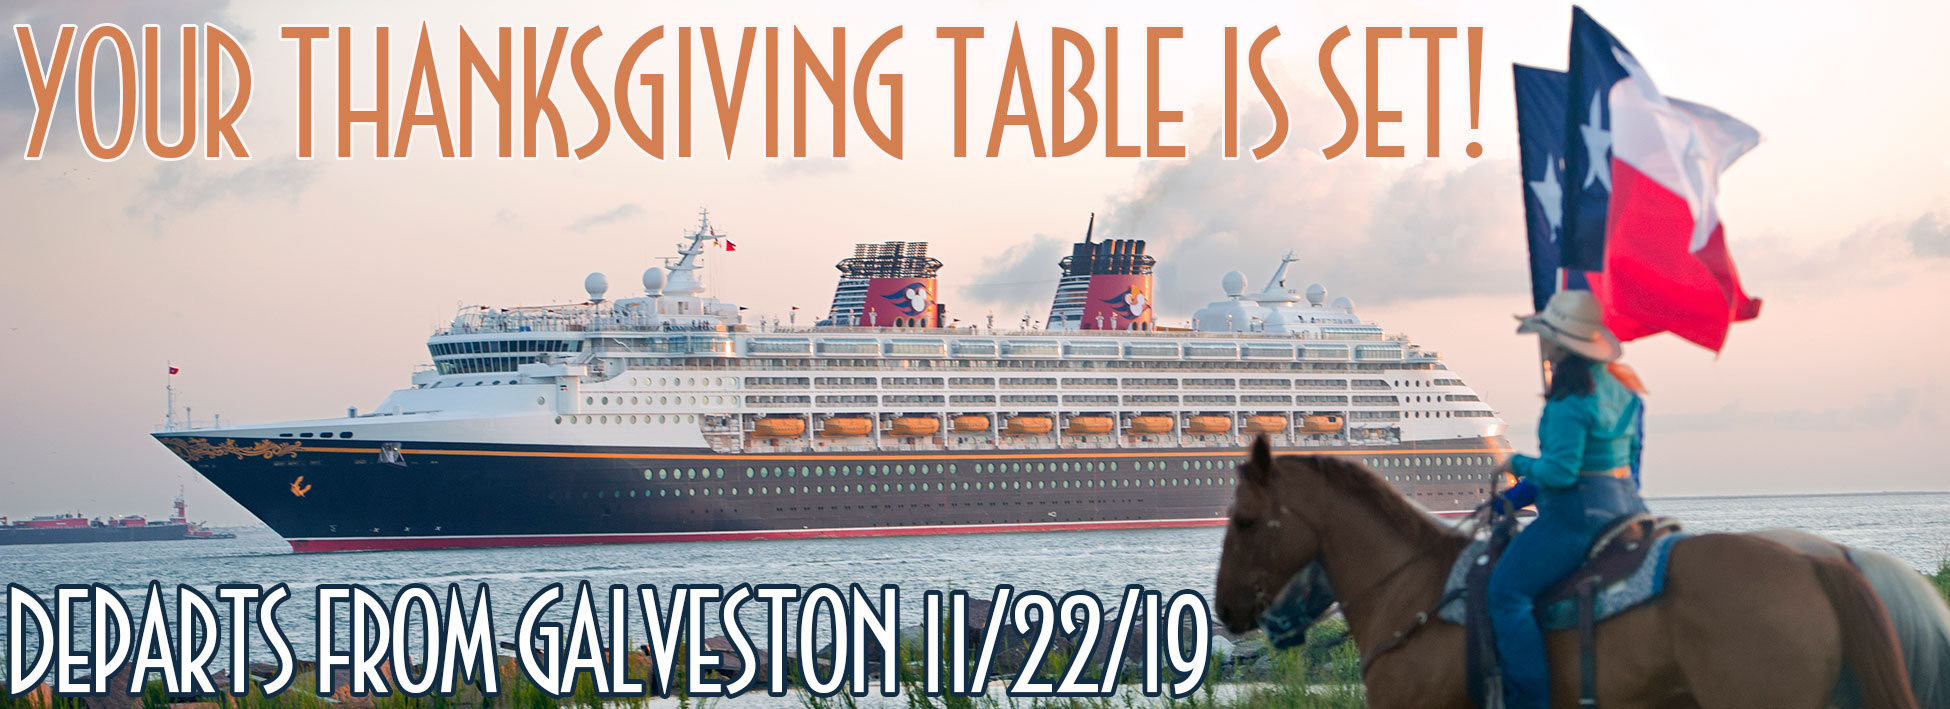 Disney Cruise Line Thanksgiving Cruise from Galveston 2019